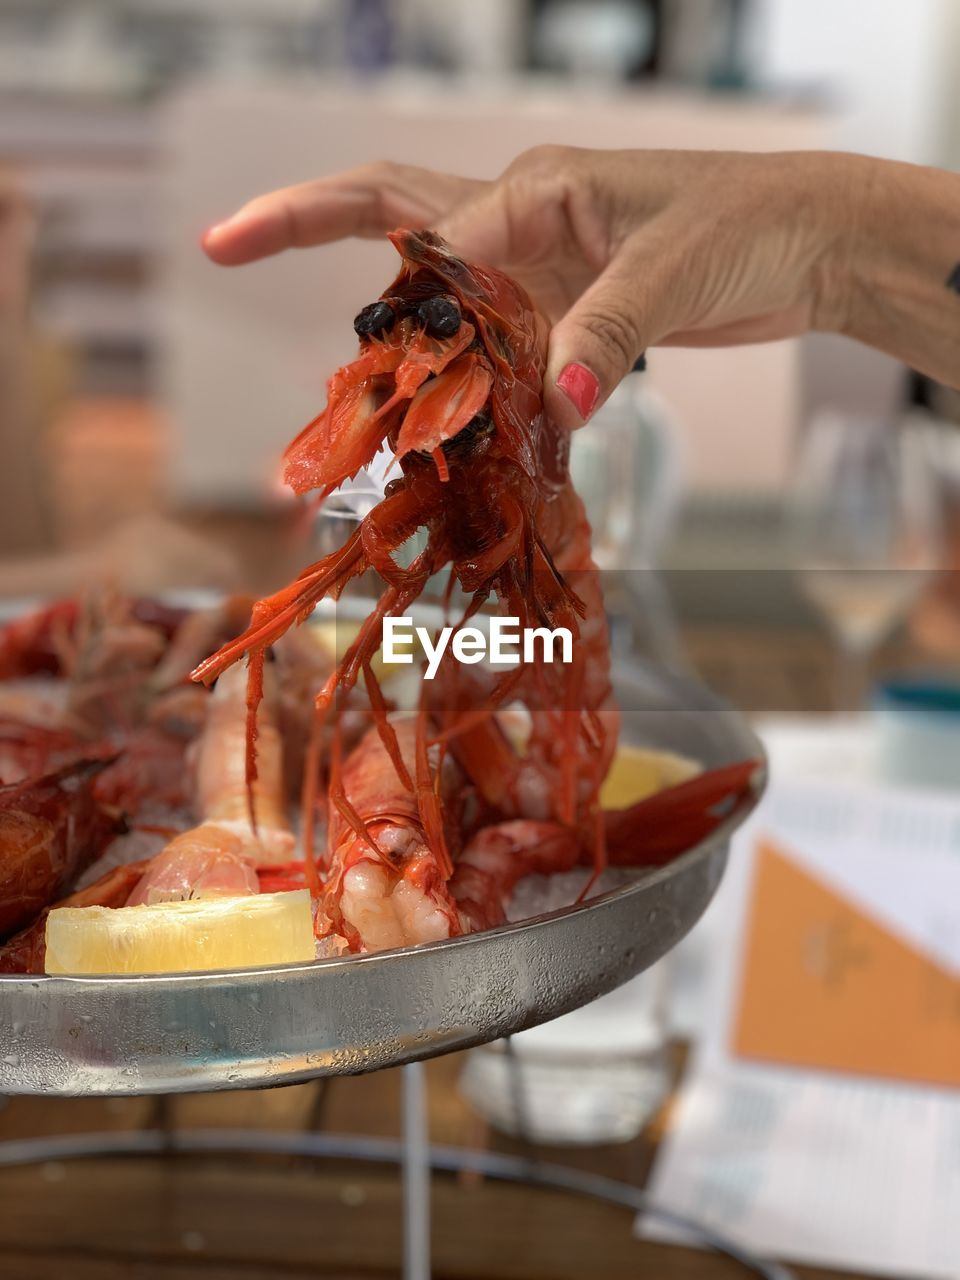 food and drink, food, human hand, freshness, real people, one person, hand, human body part, focus on foreground, seafood, crustacean, holding, indoors, close-up, healthy eating, wellbeing, body part, unrecognizable person, finger, preparation, lobster, preparing food